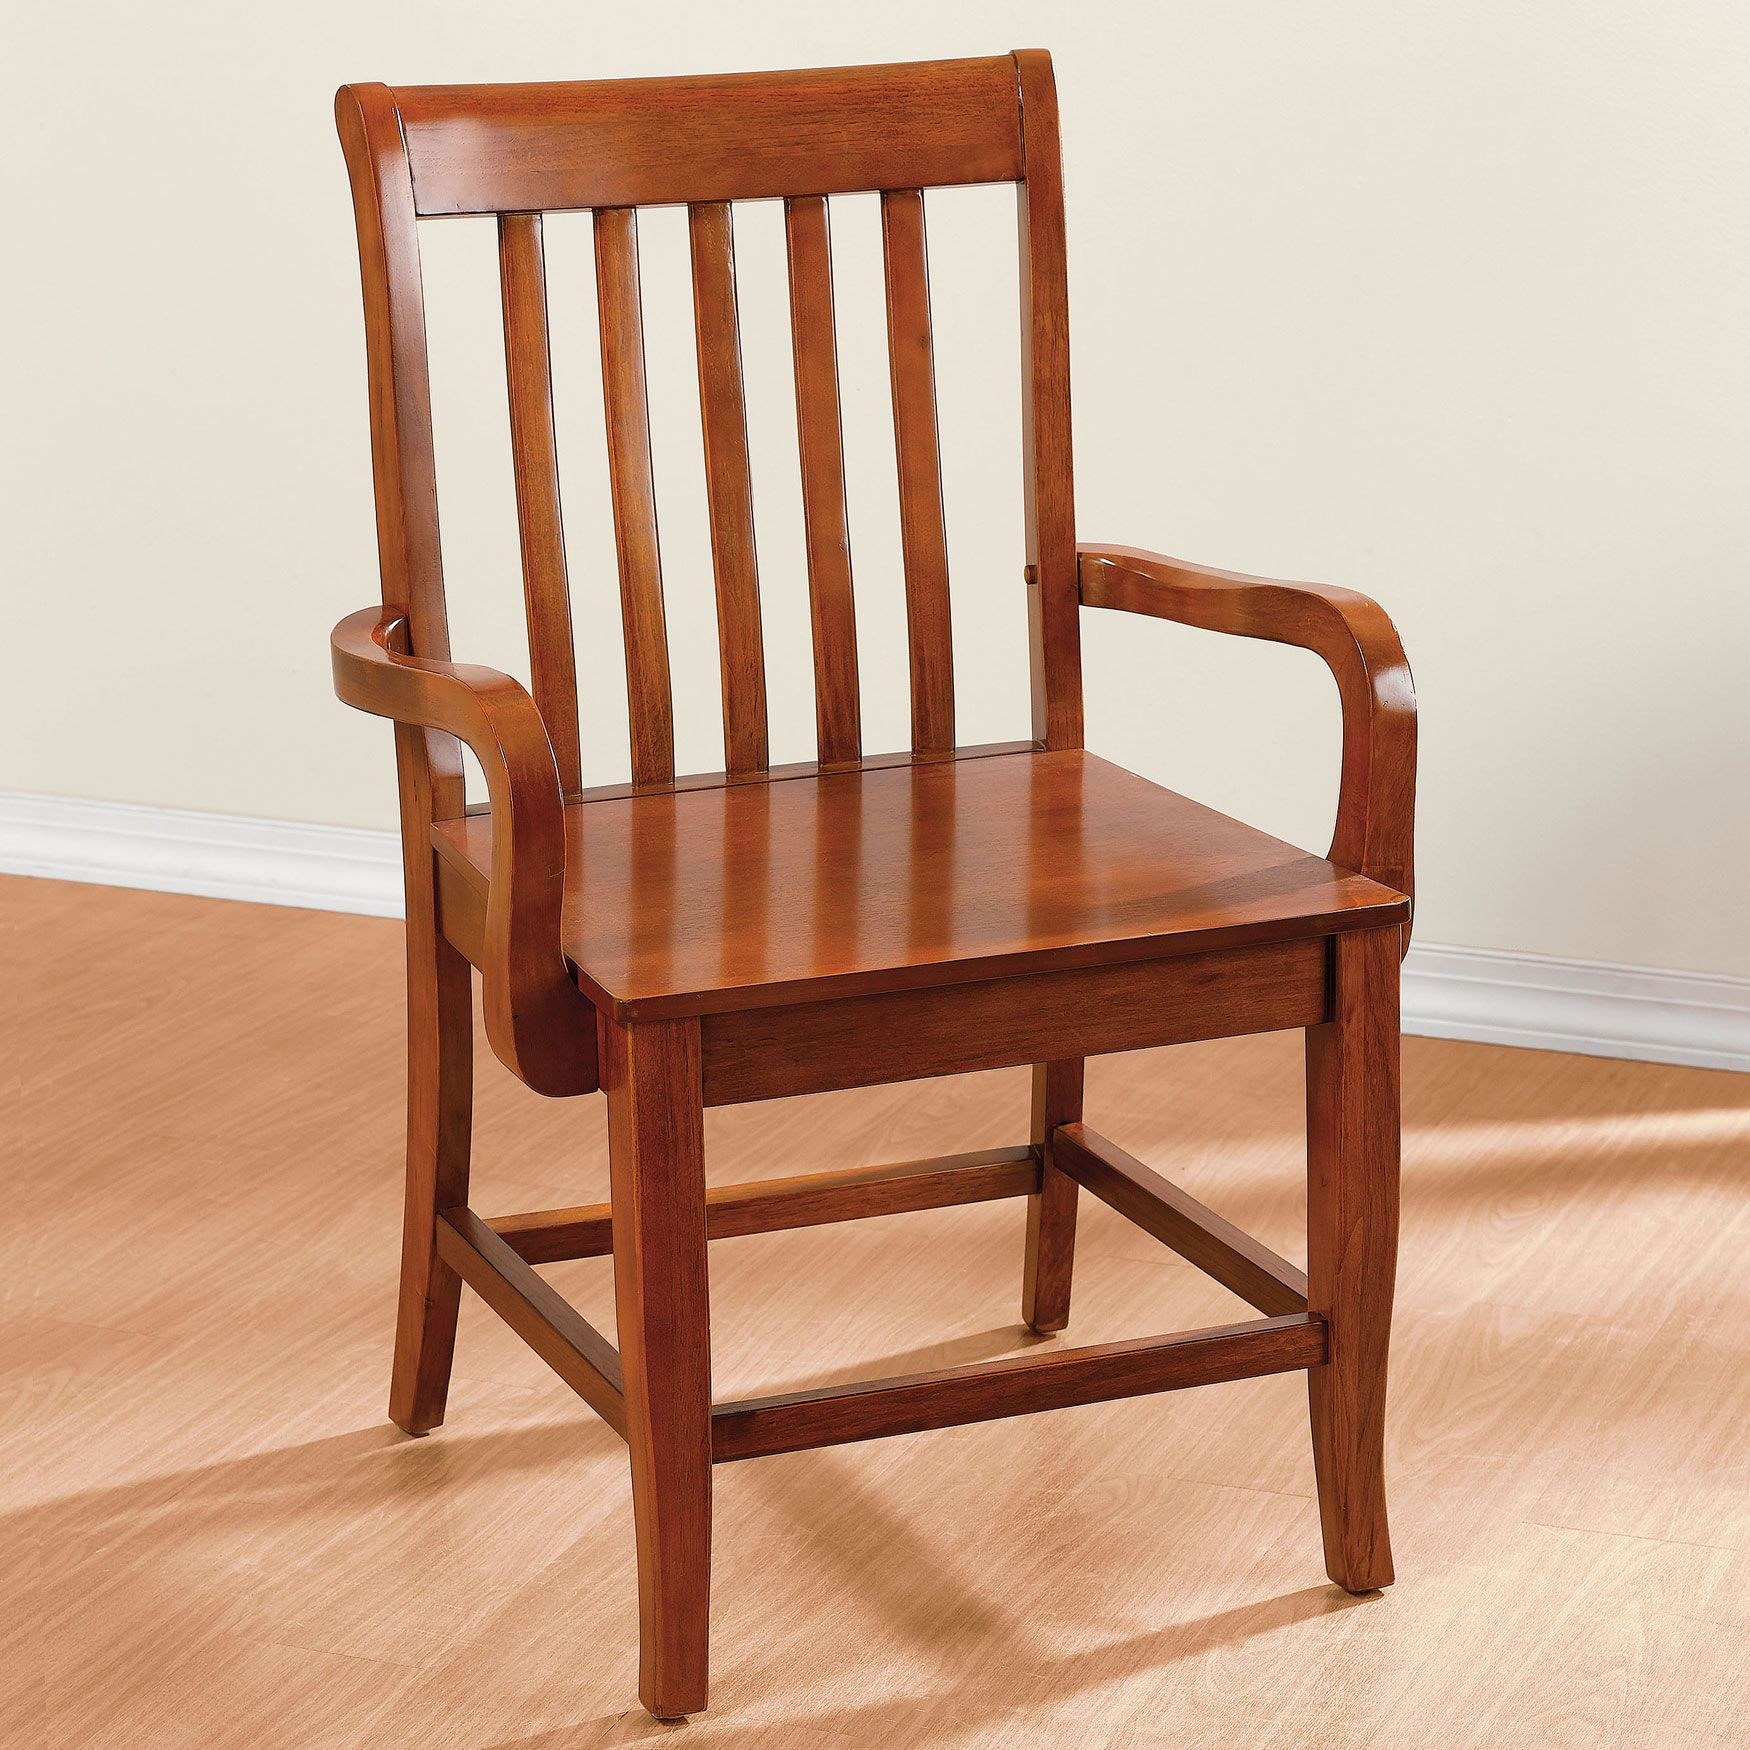 Extra Wide Slat Back Chair With Arms | Extra Large Chairs ...